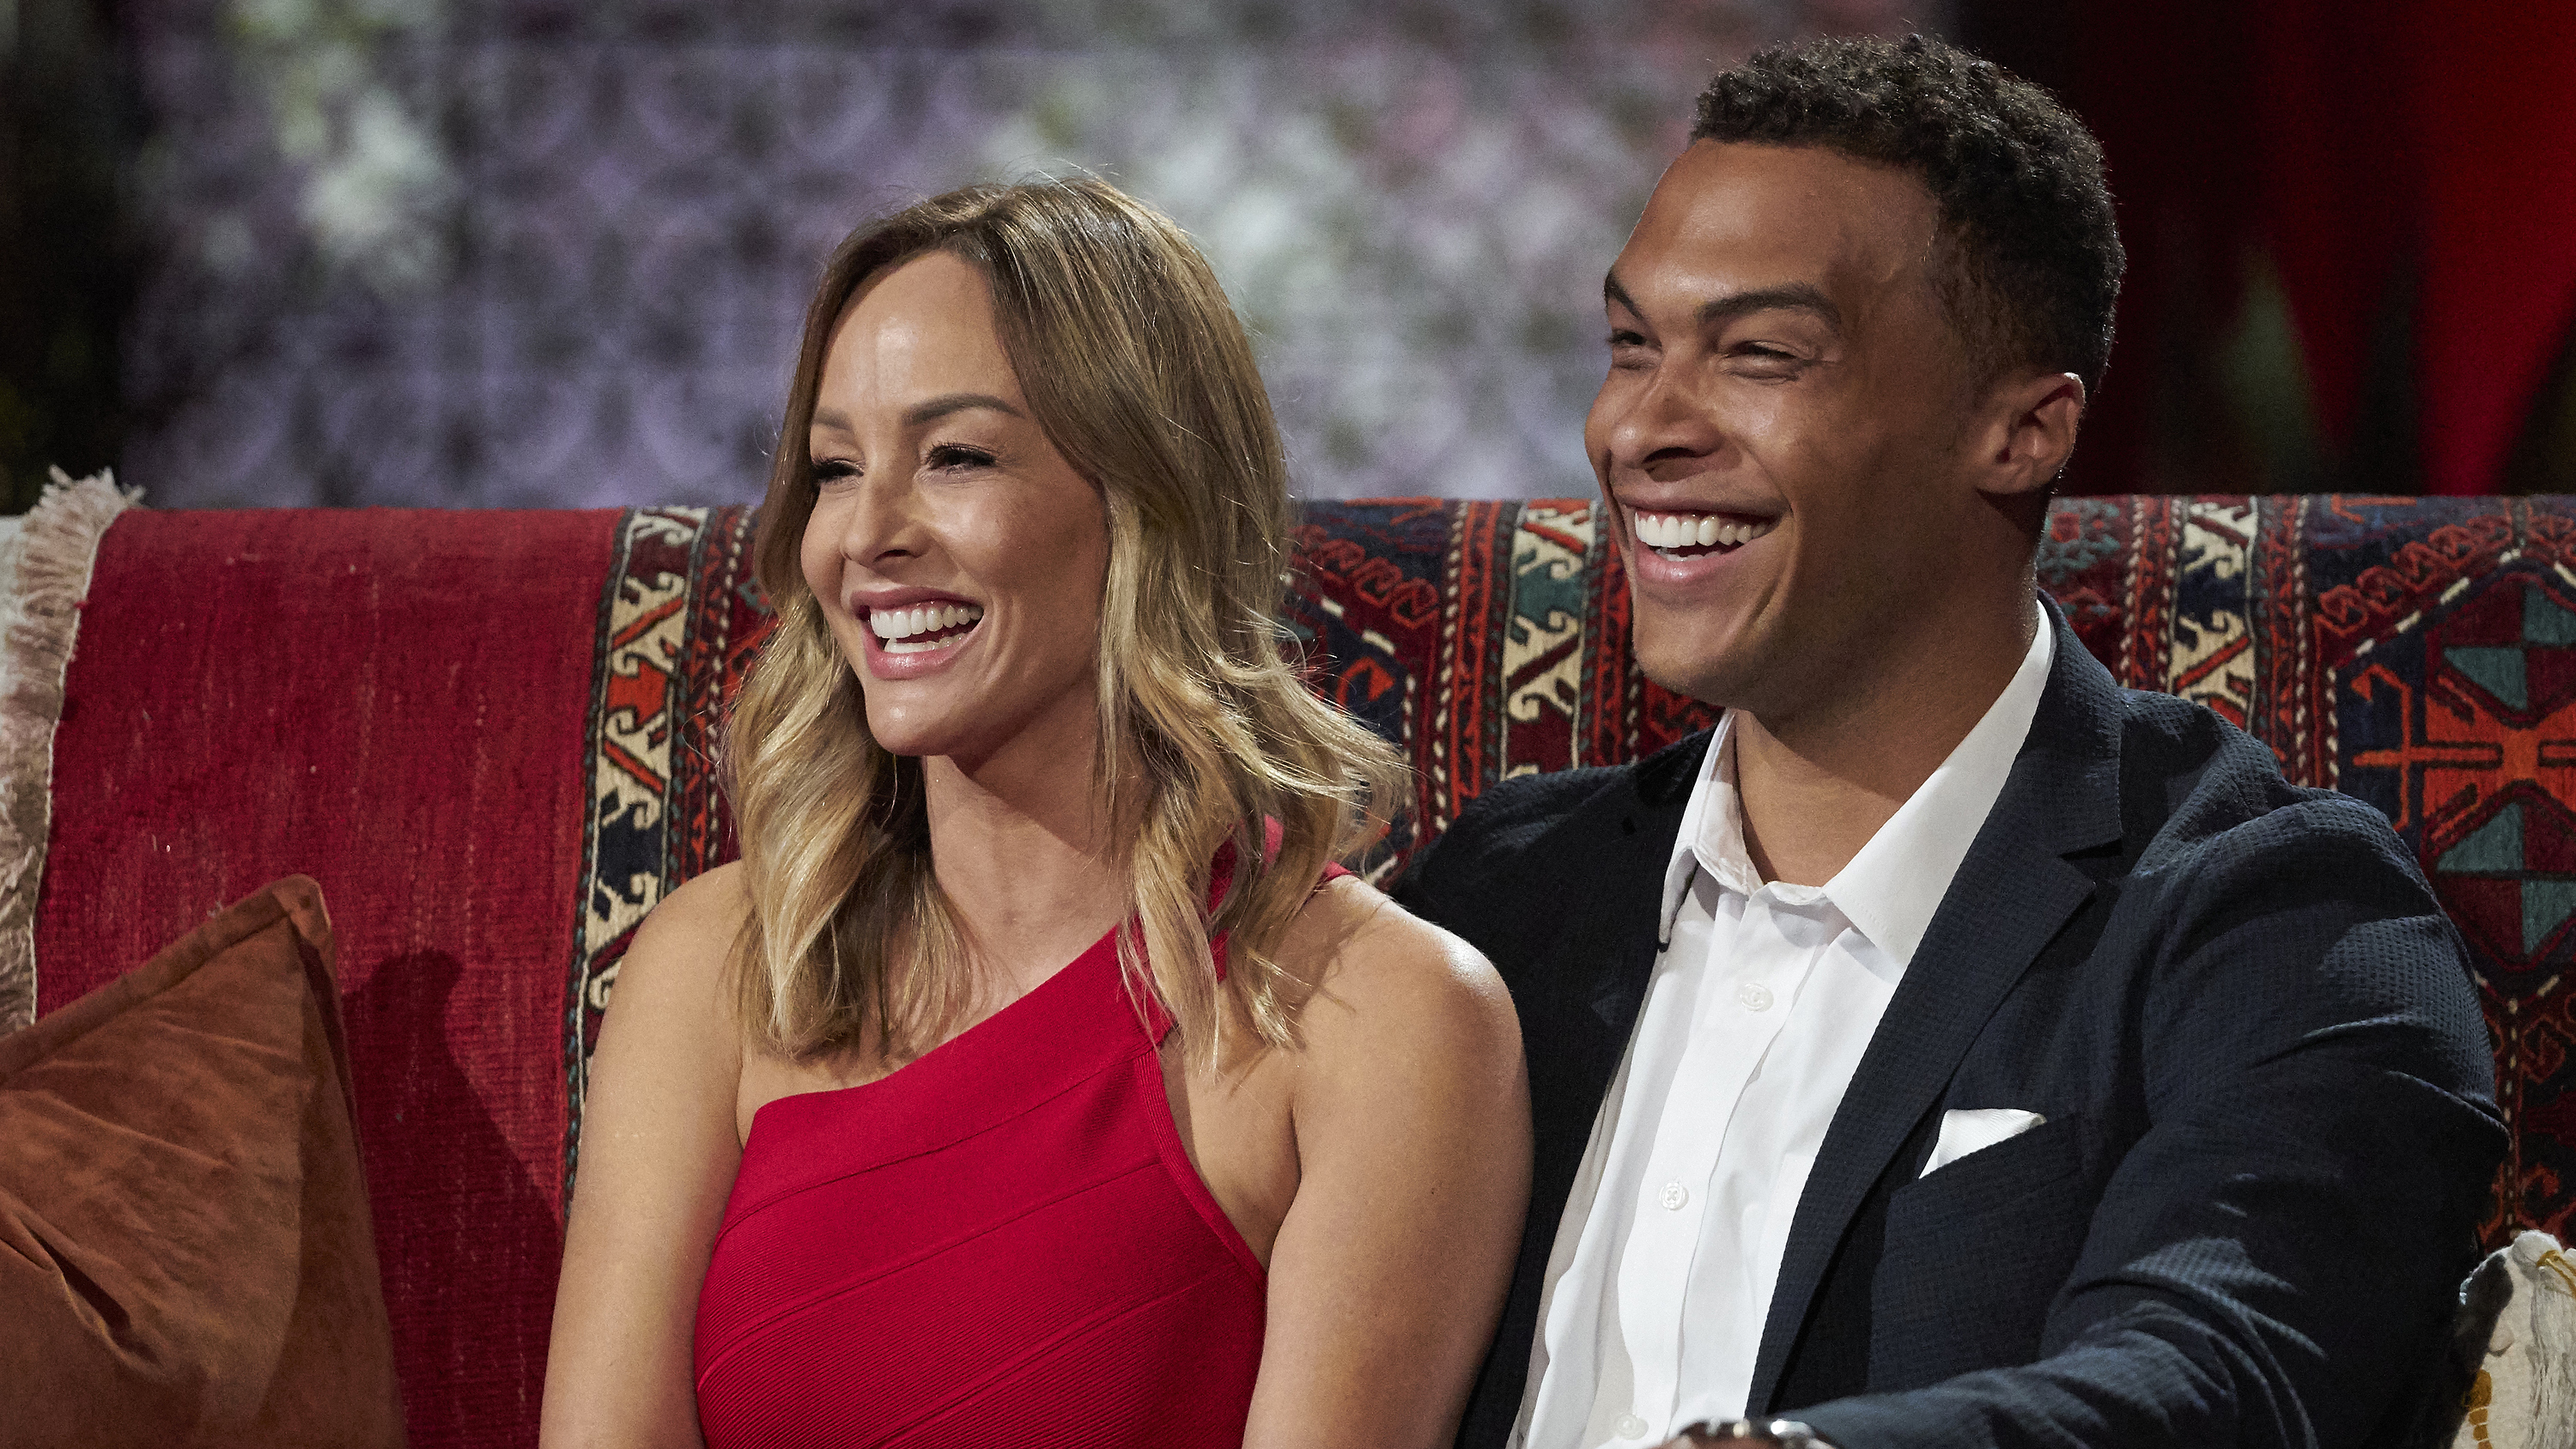 'Bachelorette's Clare Crawley Dale Moss split – Fox News